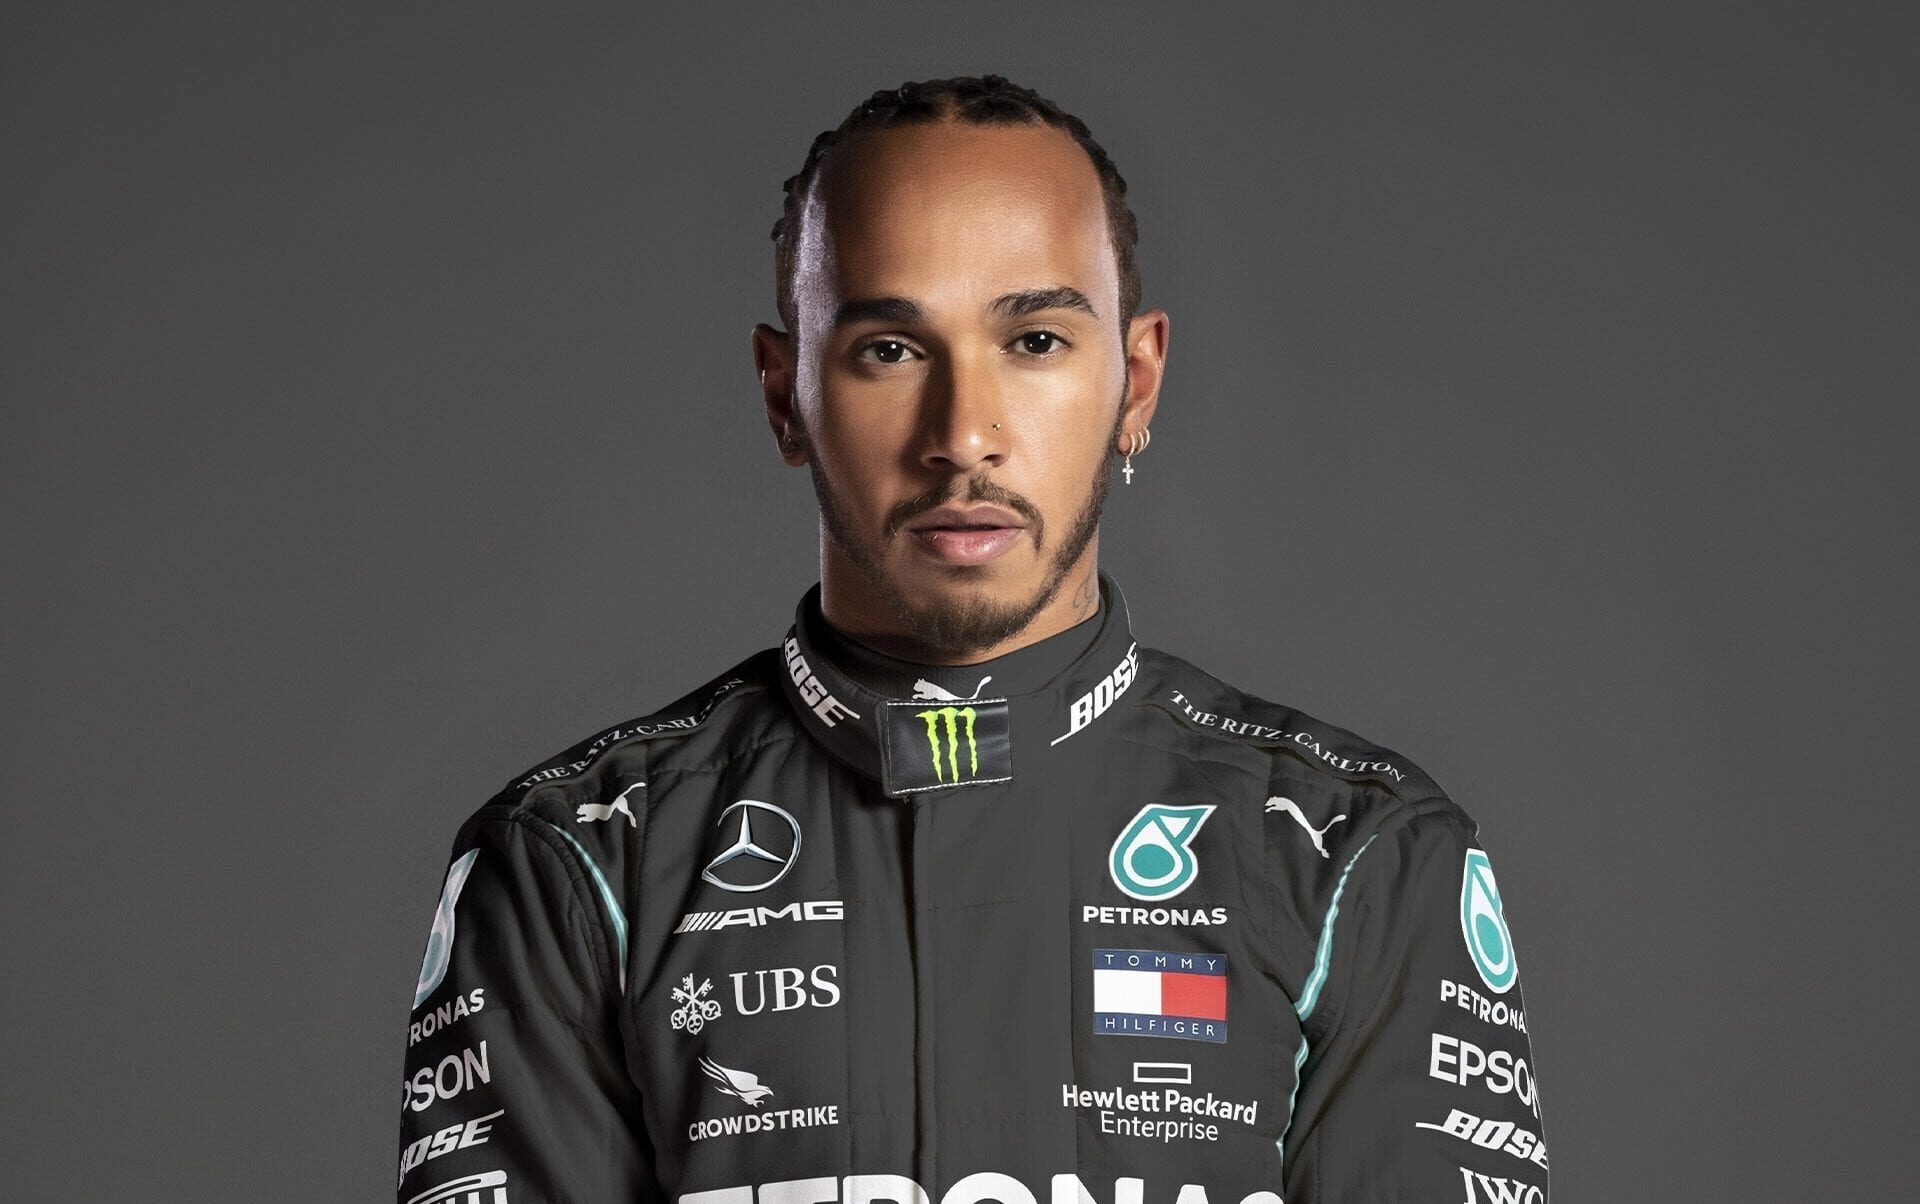 Lewis Hamilton Top 10 F1 Drivers in 2020